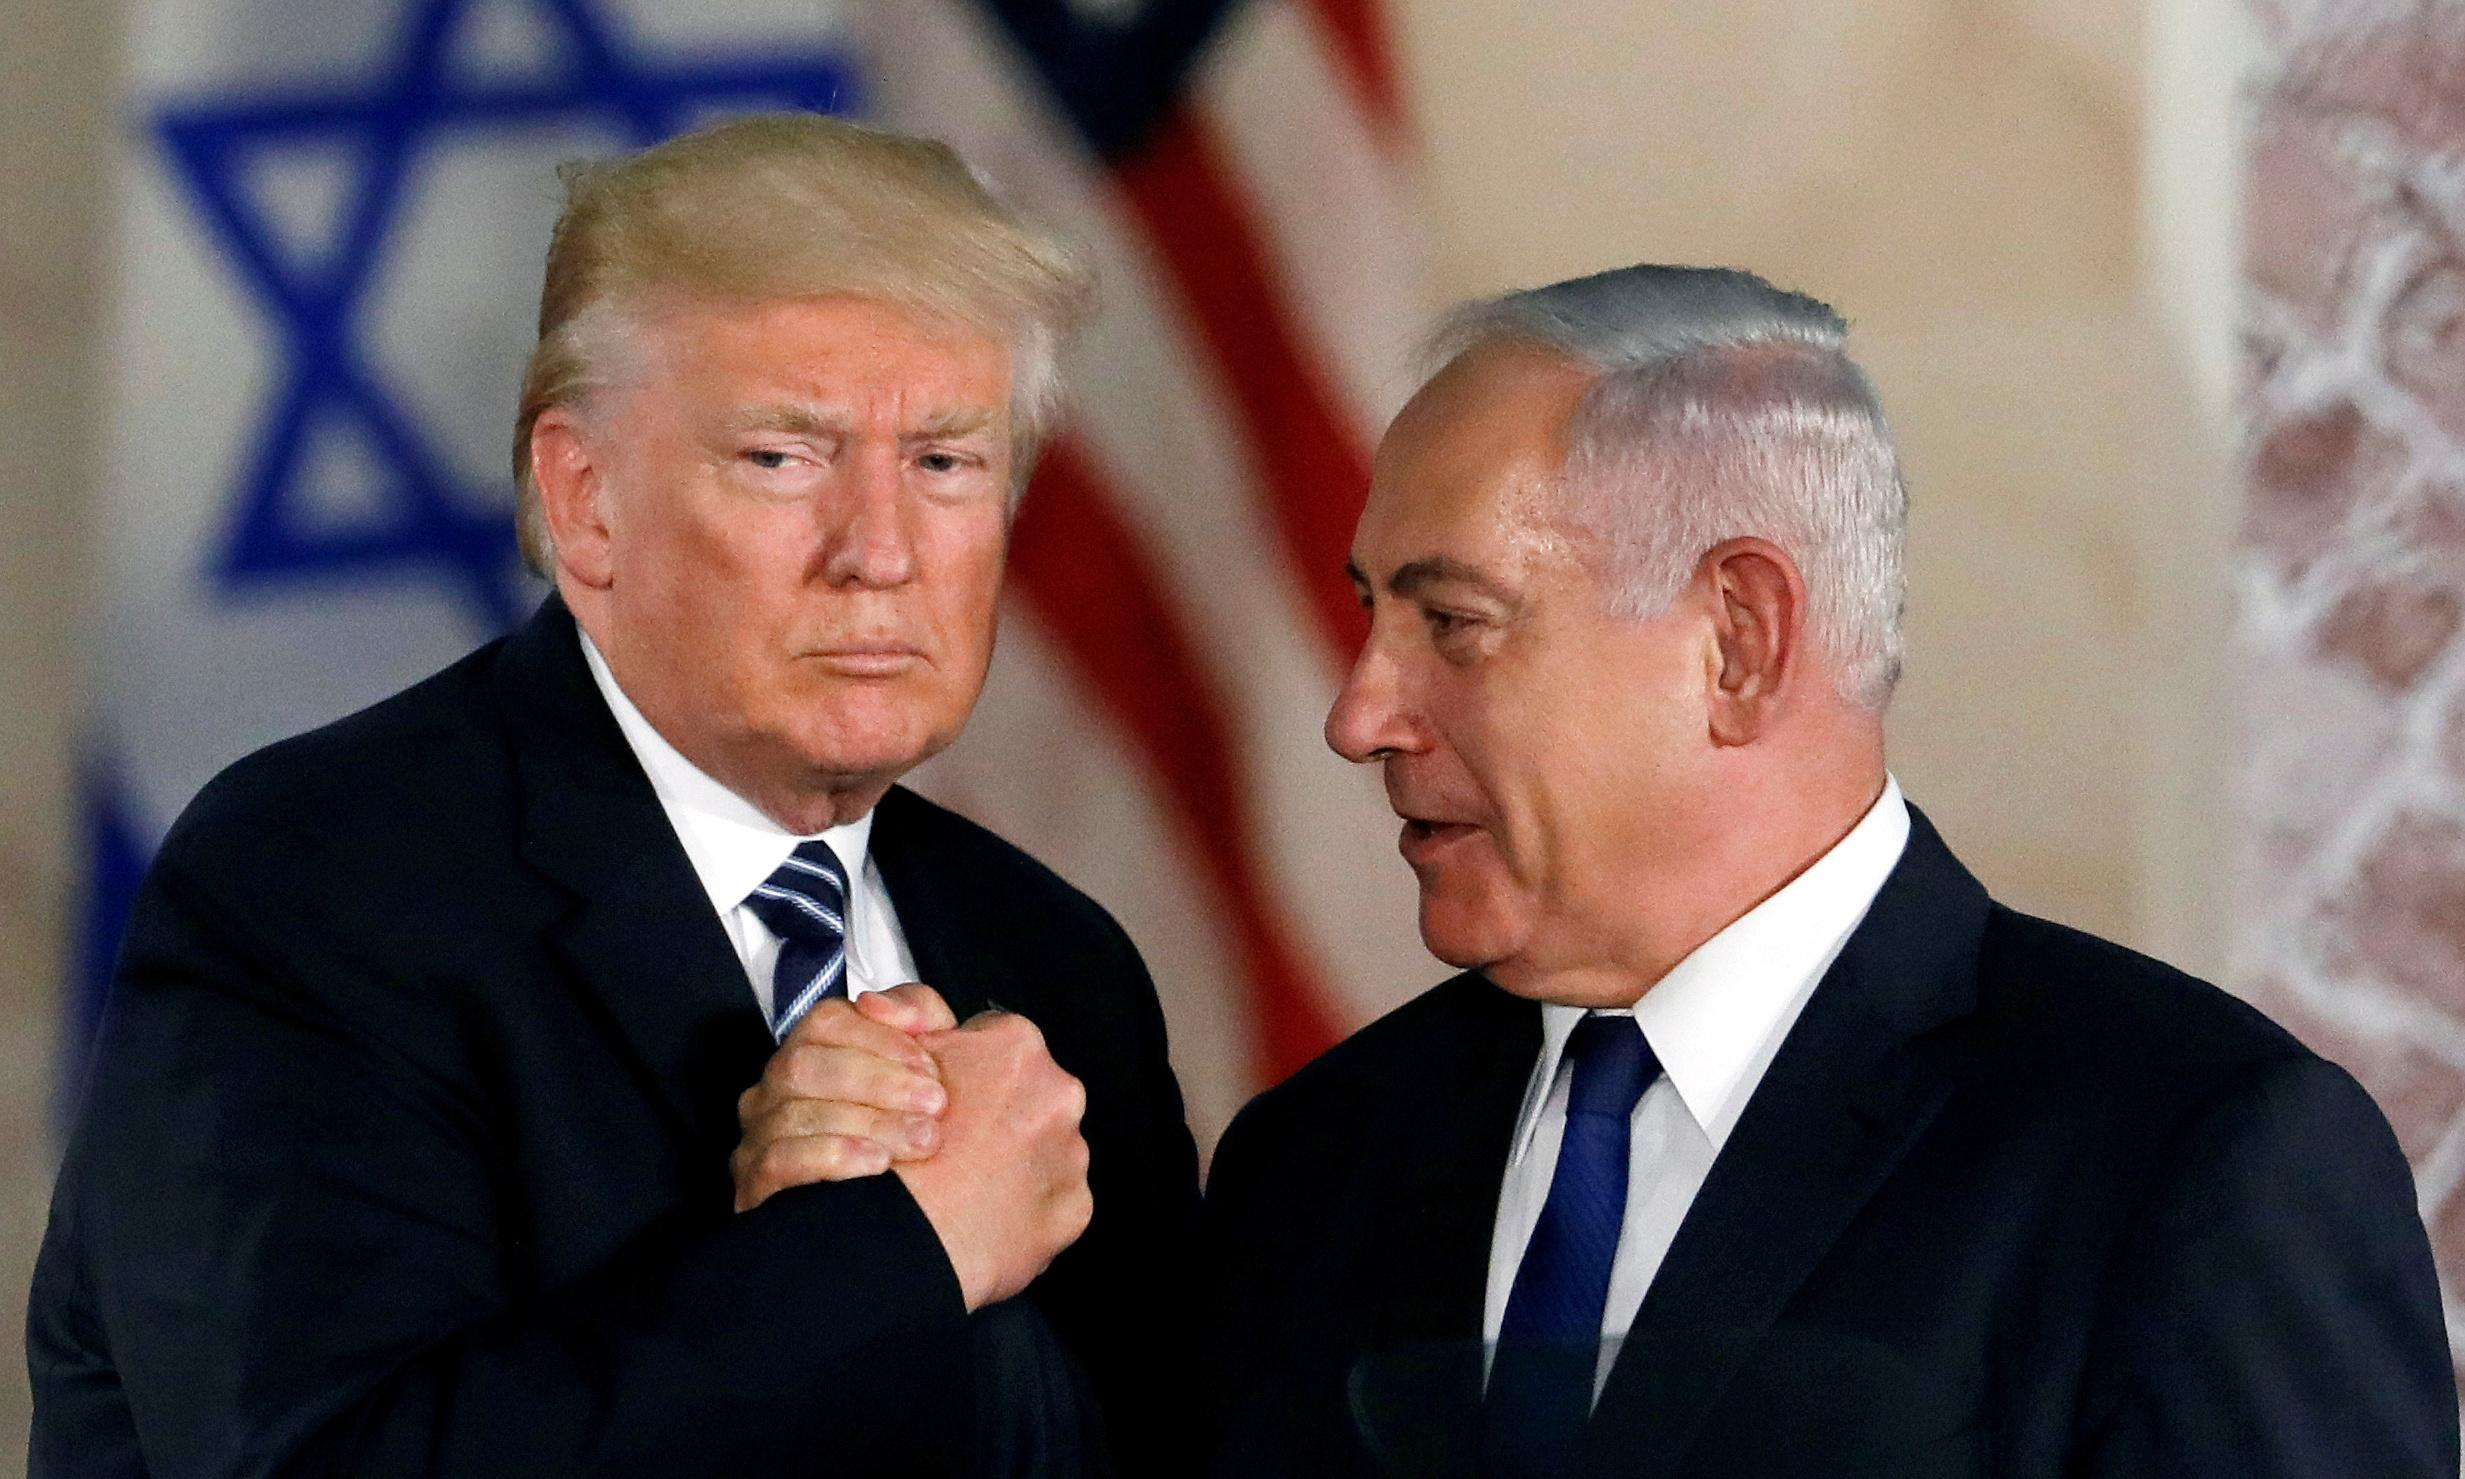 The Observer view on the threat posed to Israel by another Benjamin Netanyahu victory